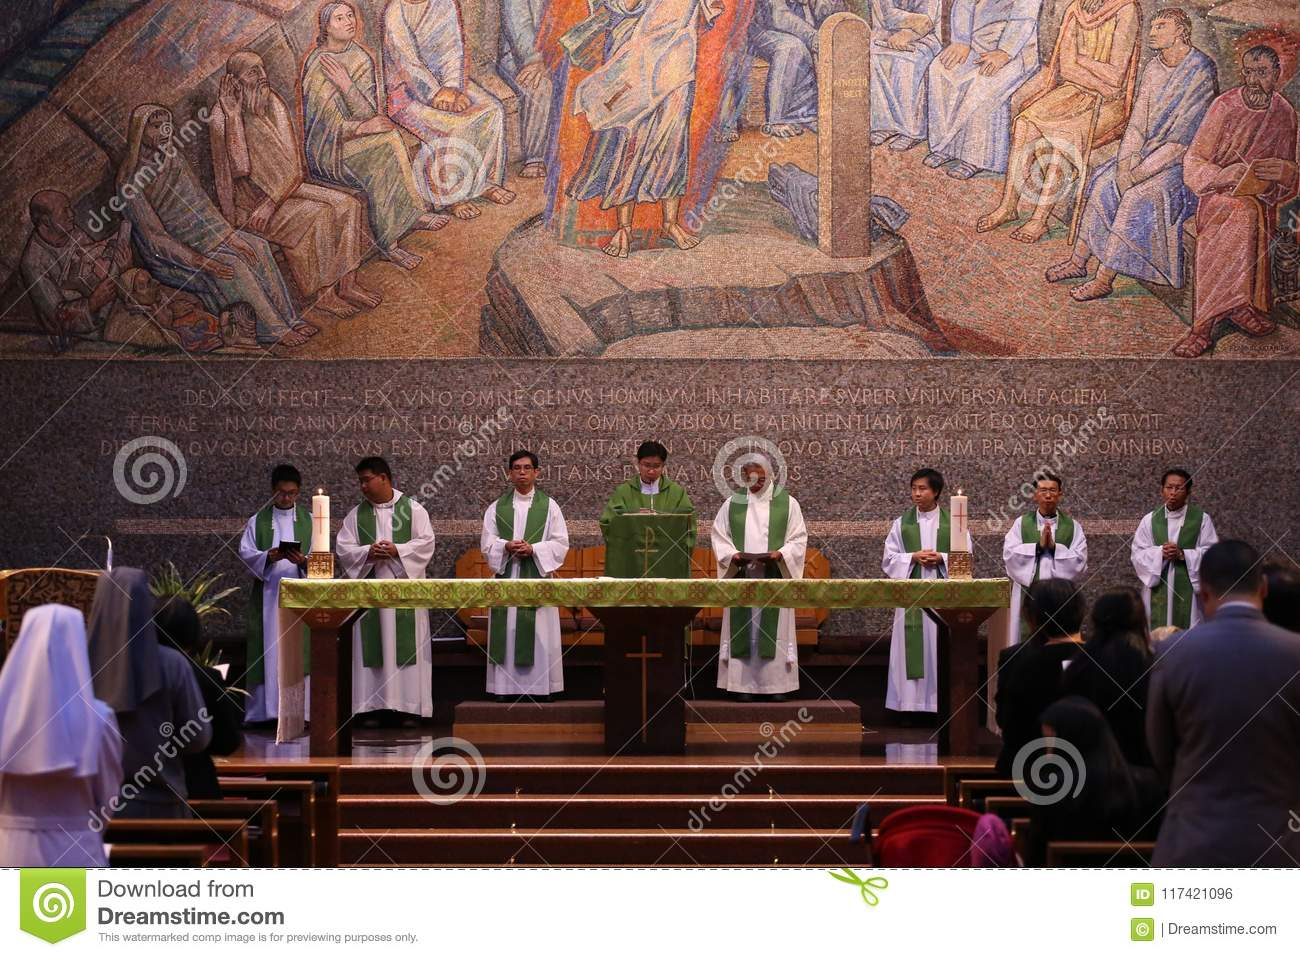 A group of Catholic priests and sisters in the Holy Mass